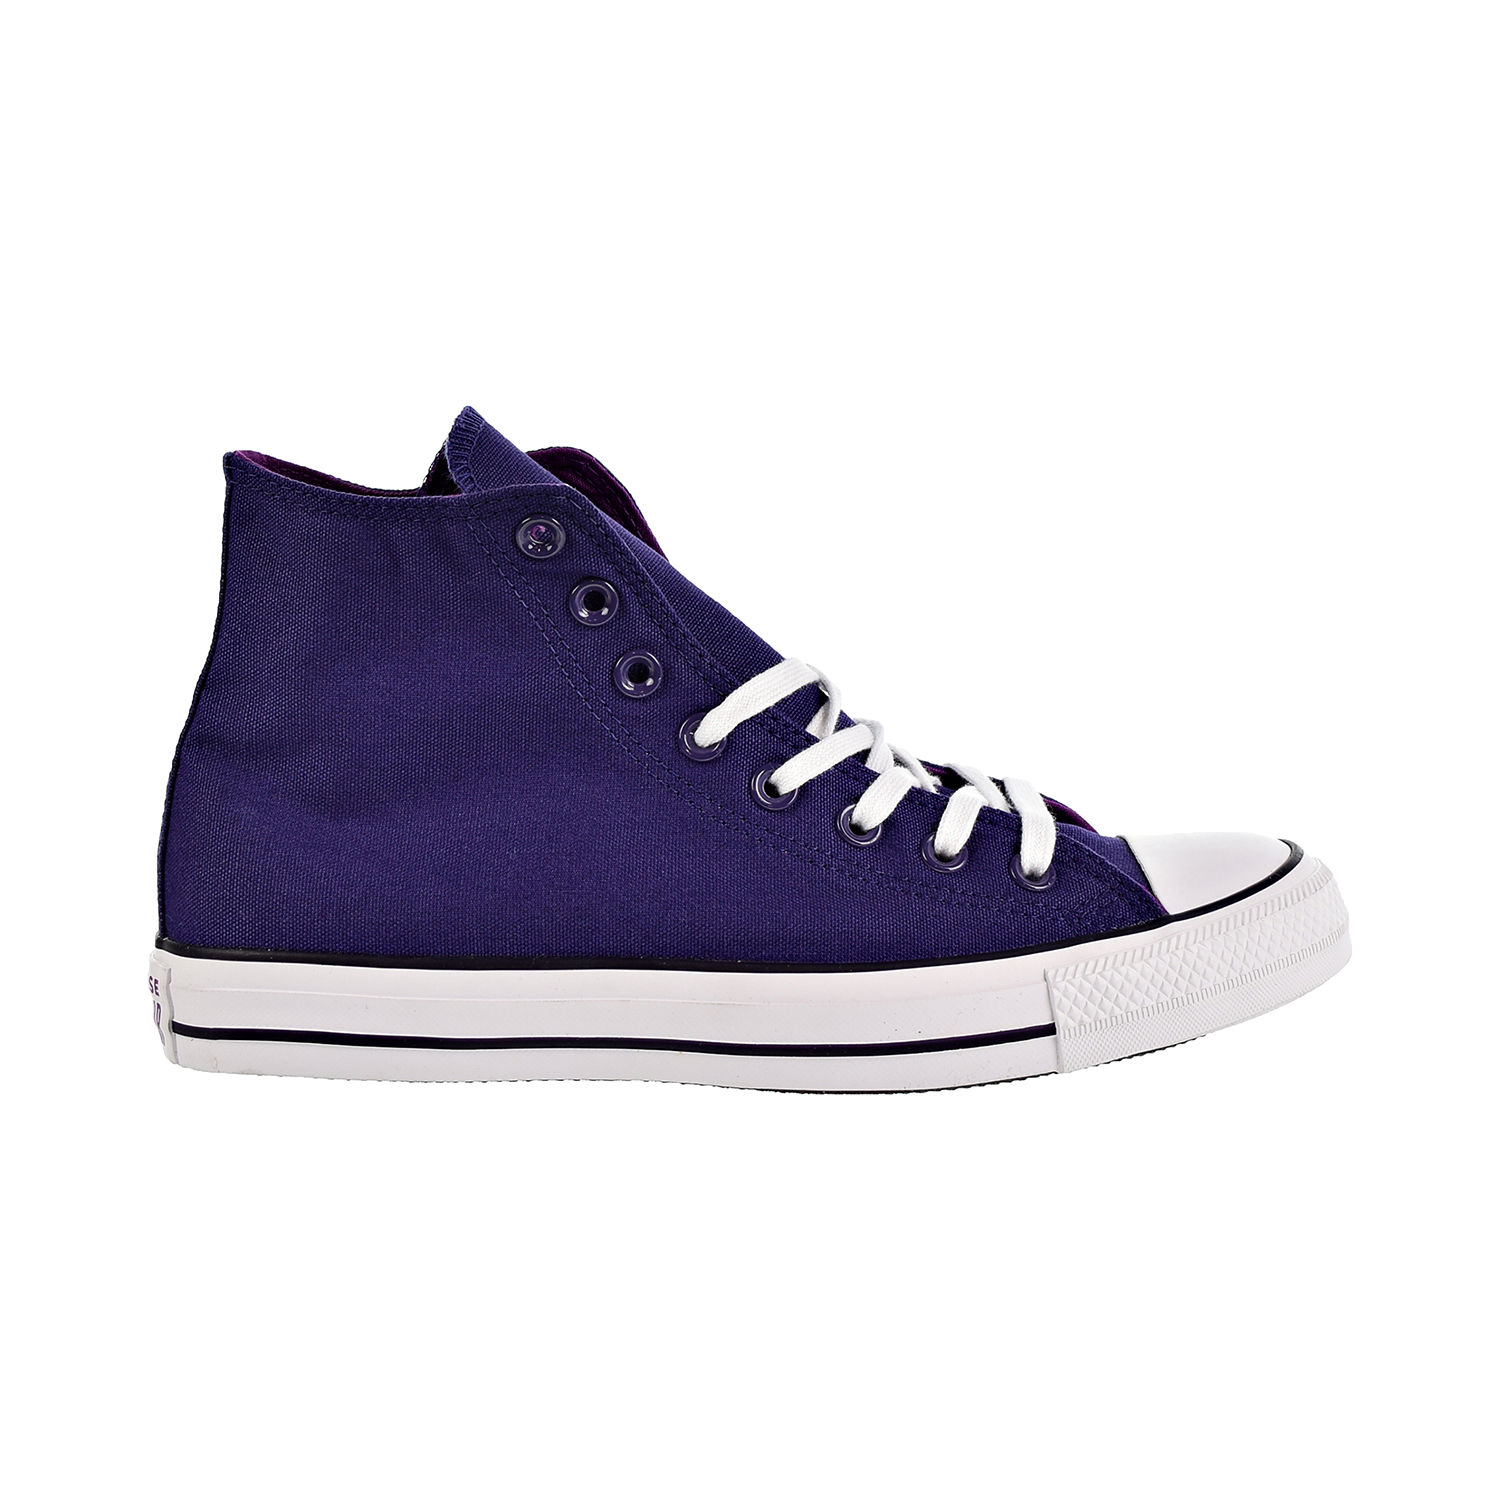 d536df67741e Converse Chuck Taylor All Star Seasonal Color Hi Unisex Men s Shoes New  Orchid 162450f